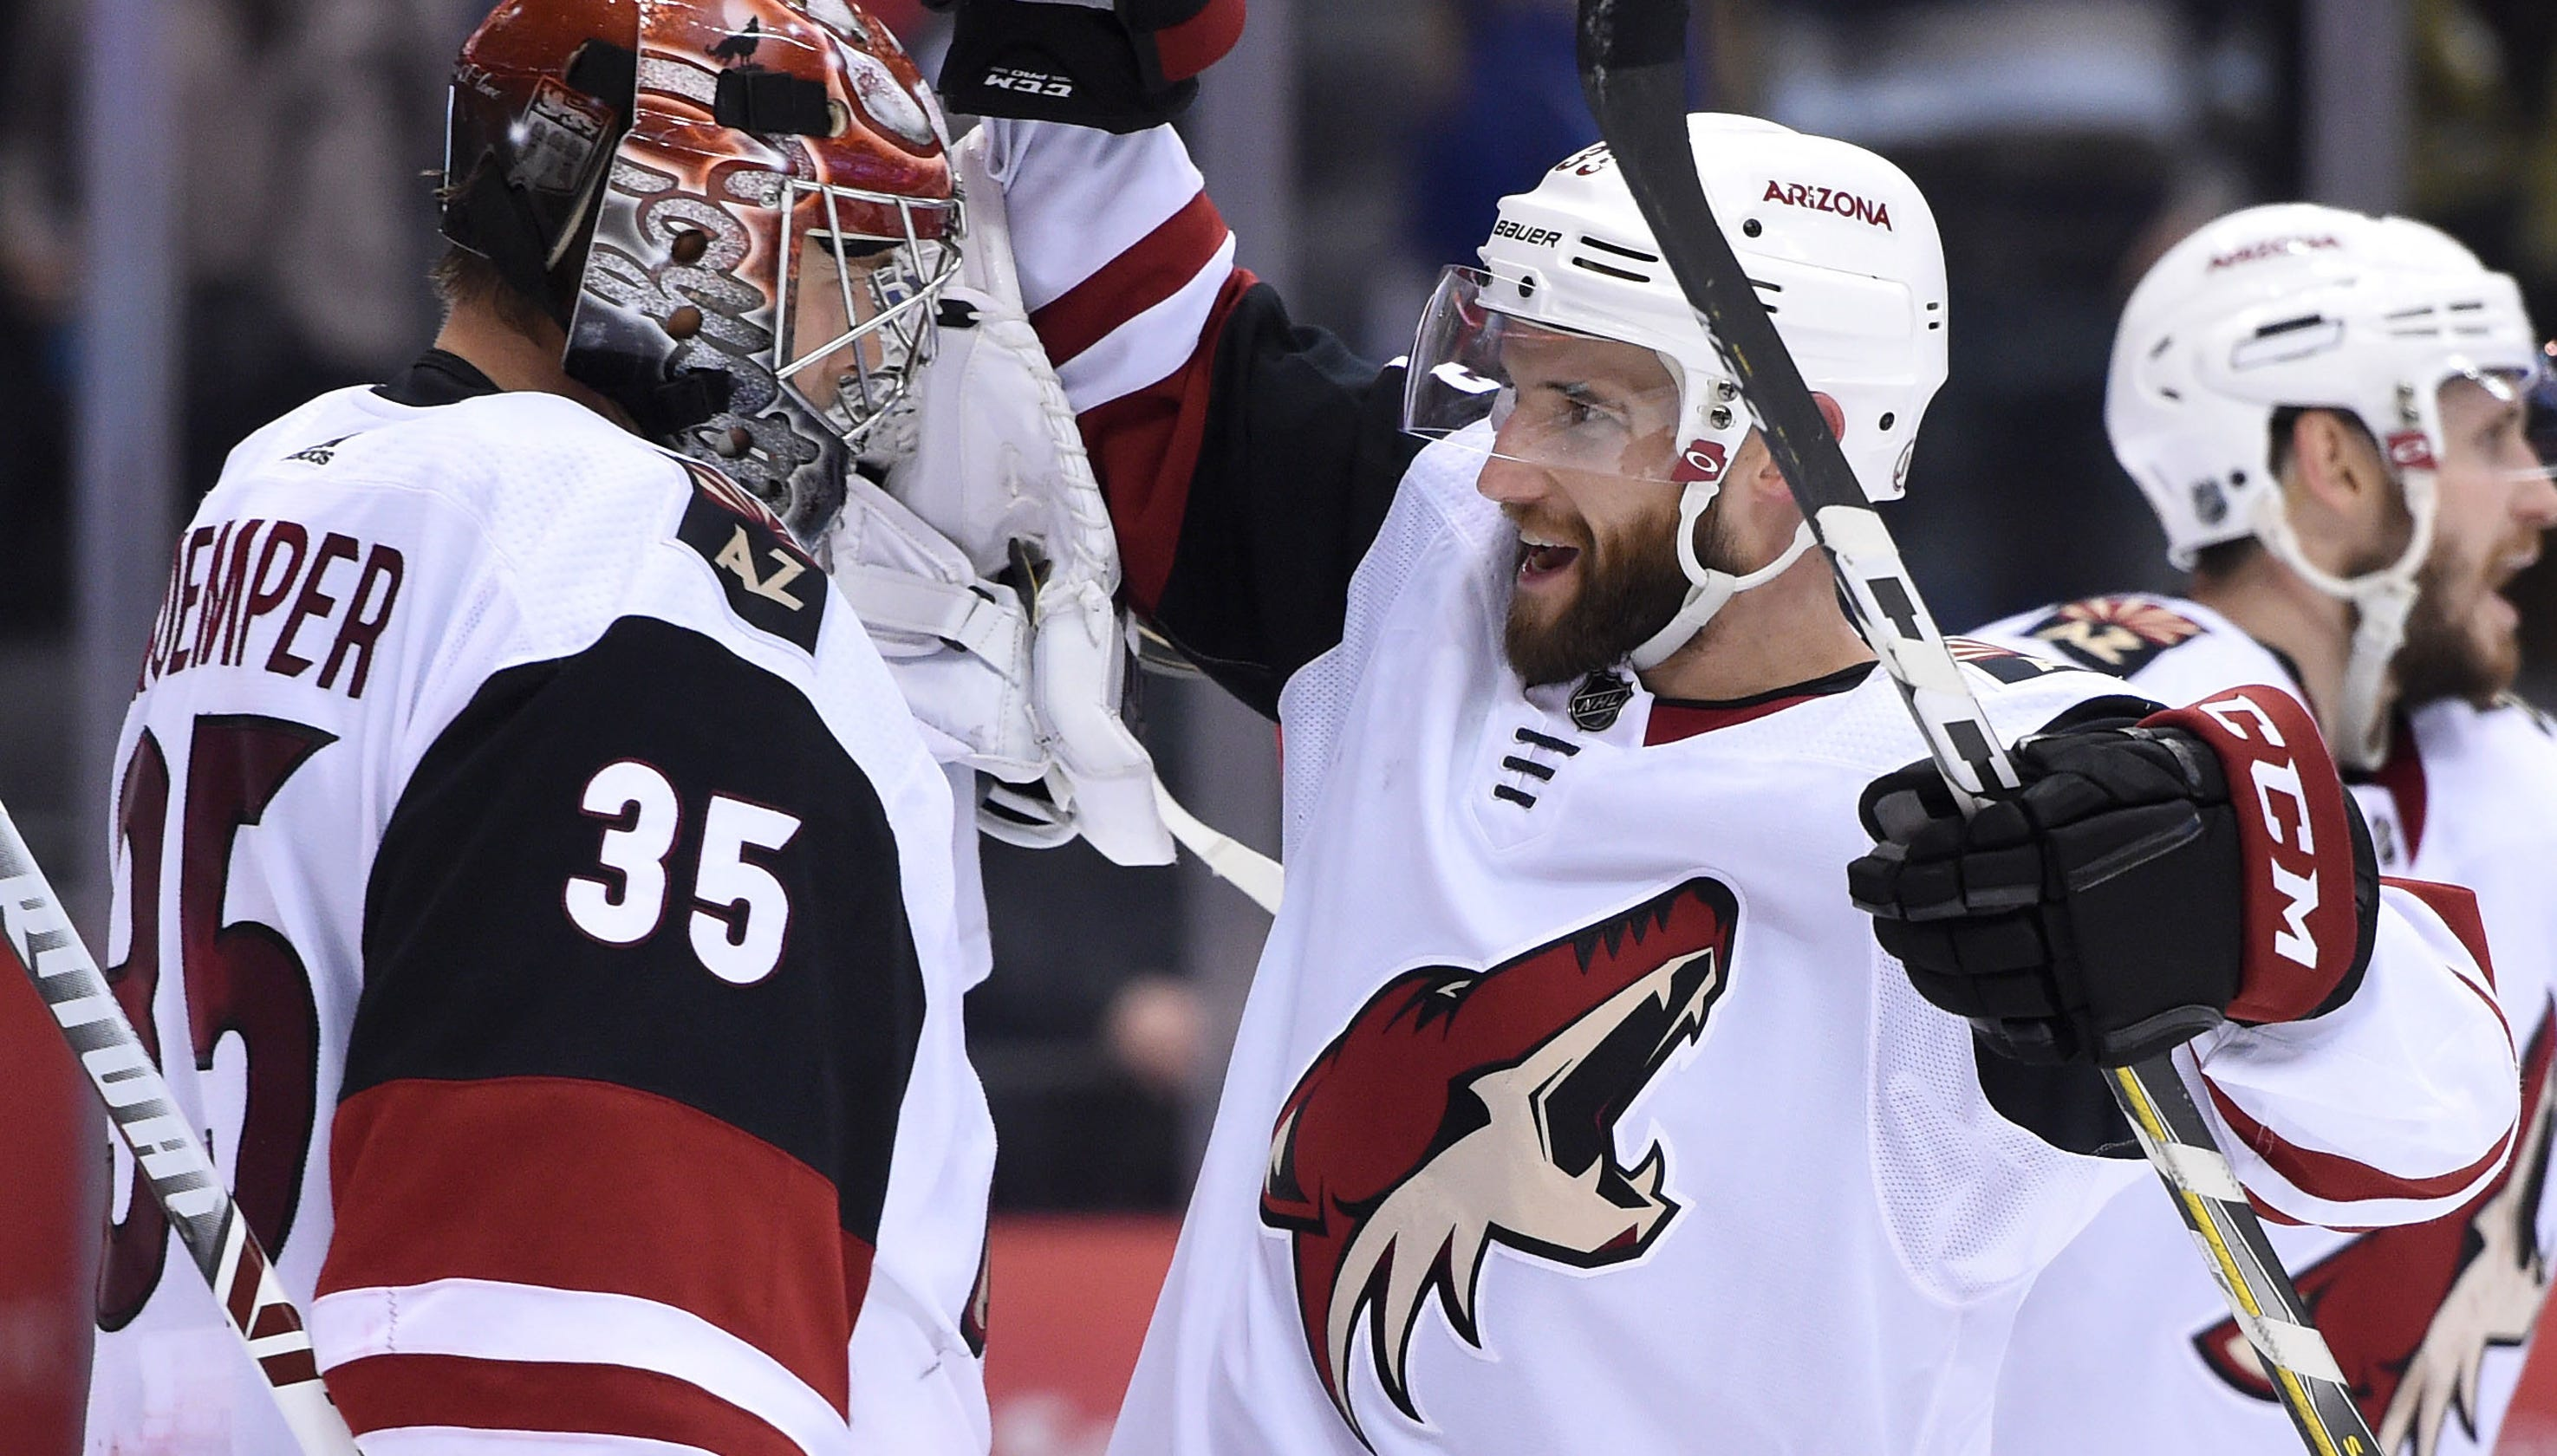 arrives 004e4 11b98 Arizona Coyotes generating NHL playoff buzz after surge in standings